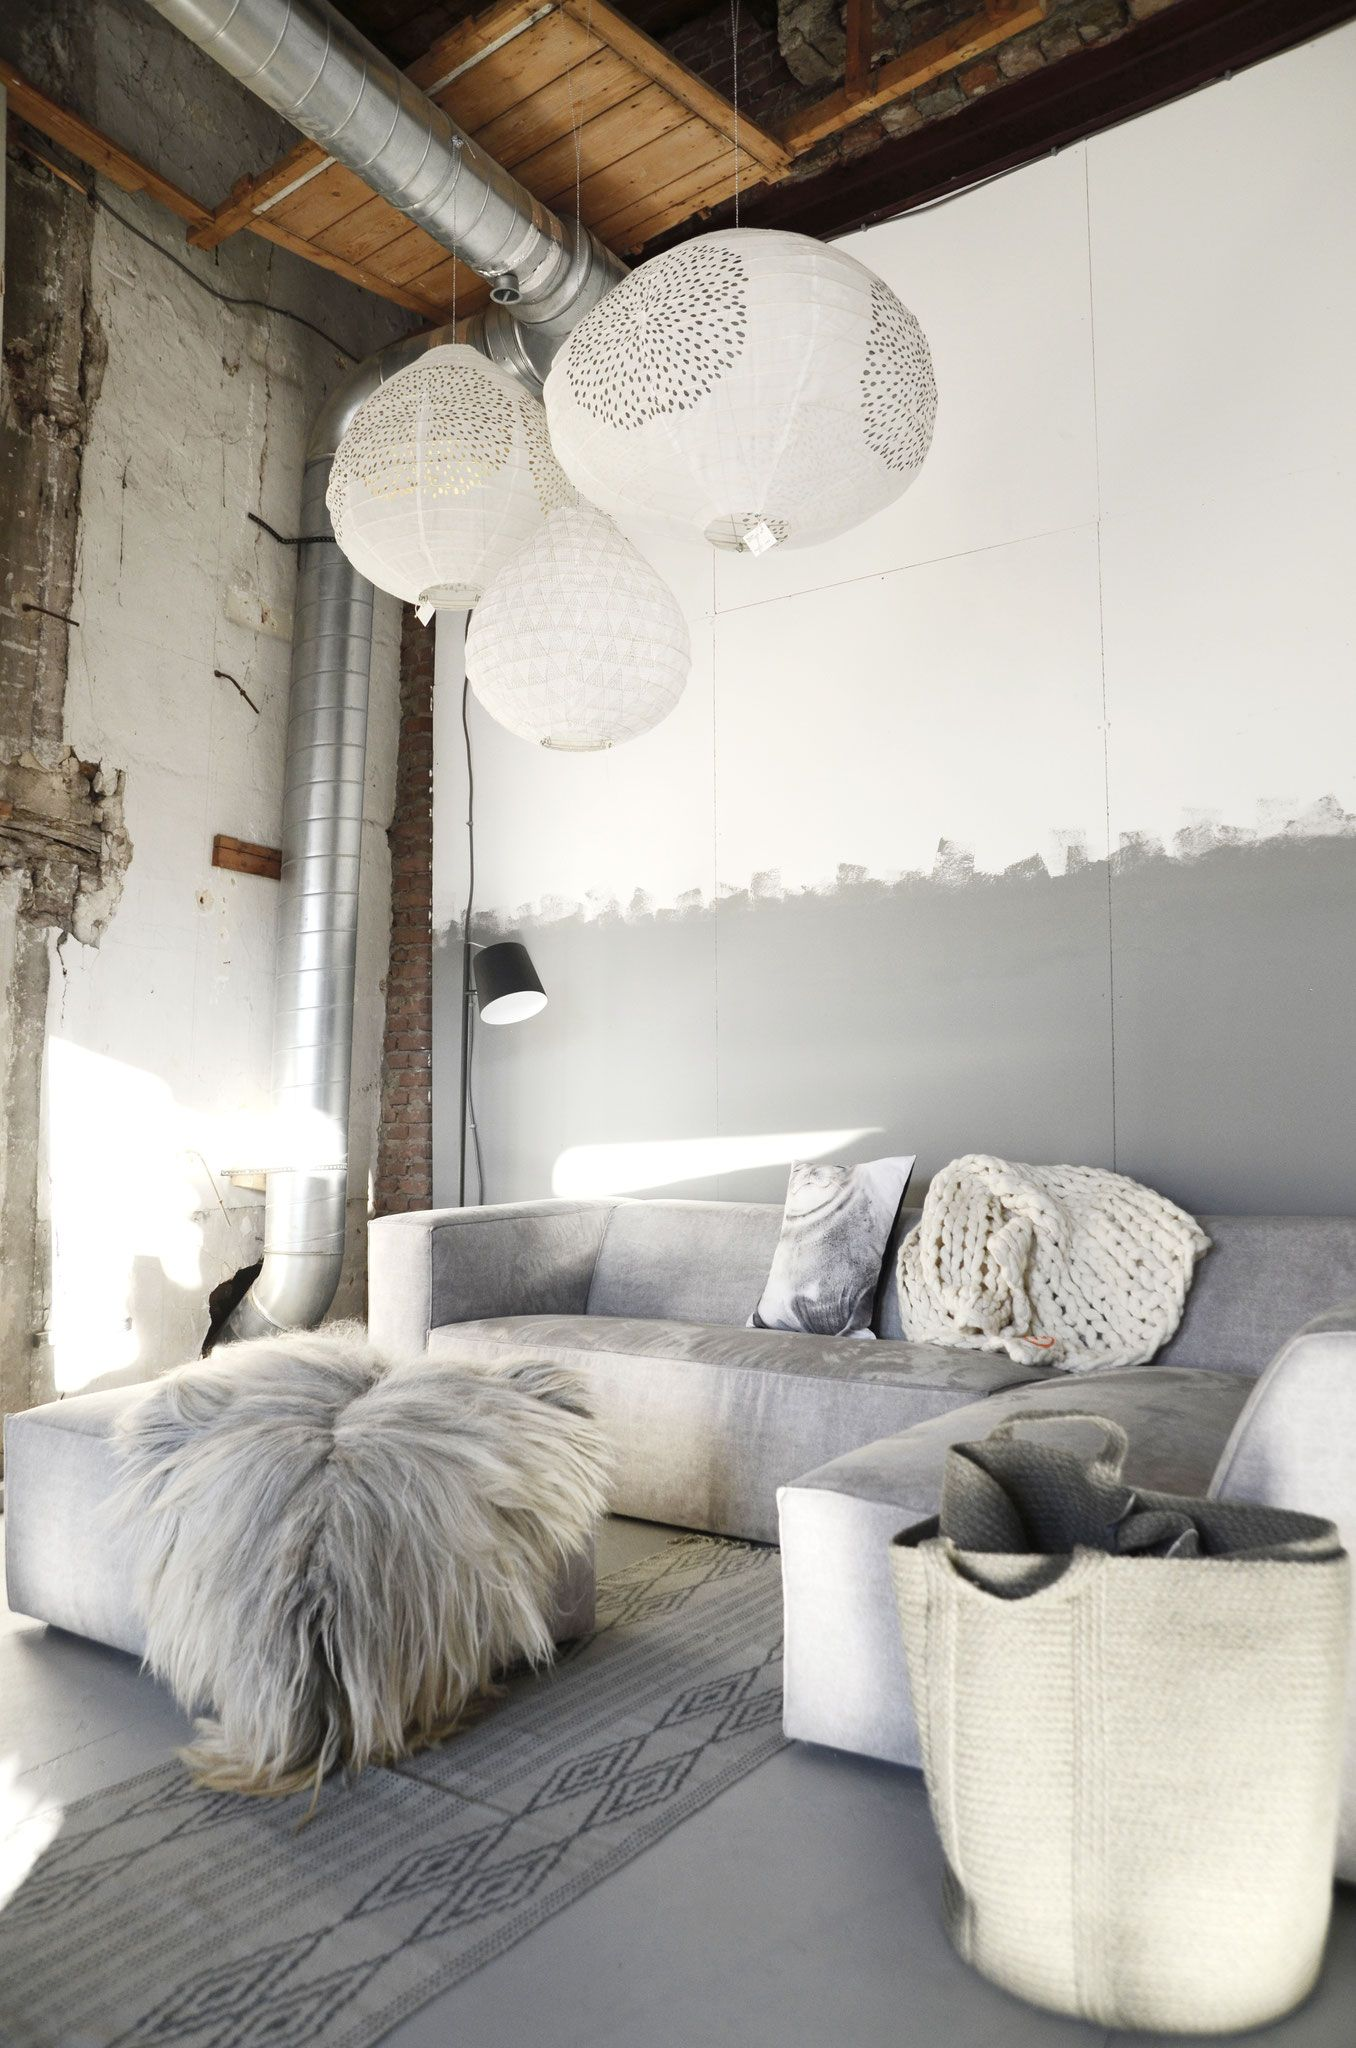 Cocoon Inspiring Home Interior Design Ideas Bycocoon Com Neutrals